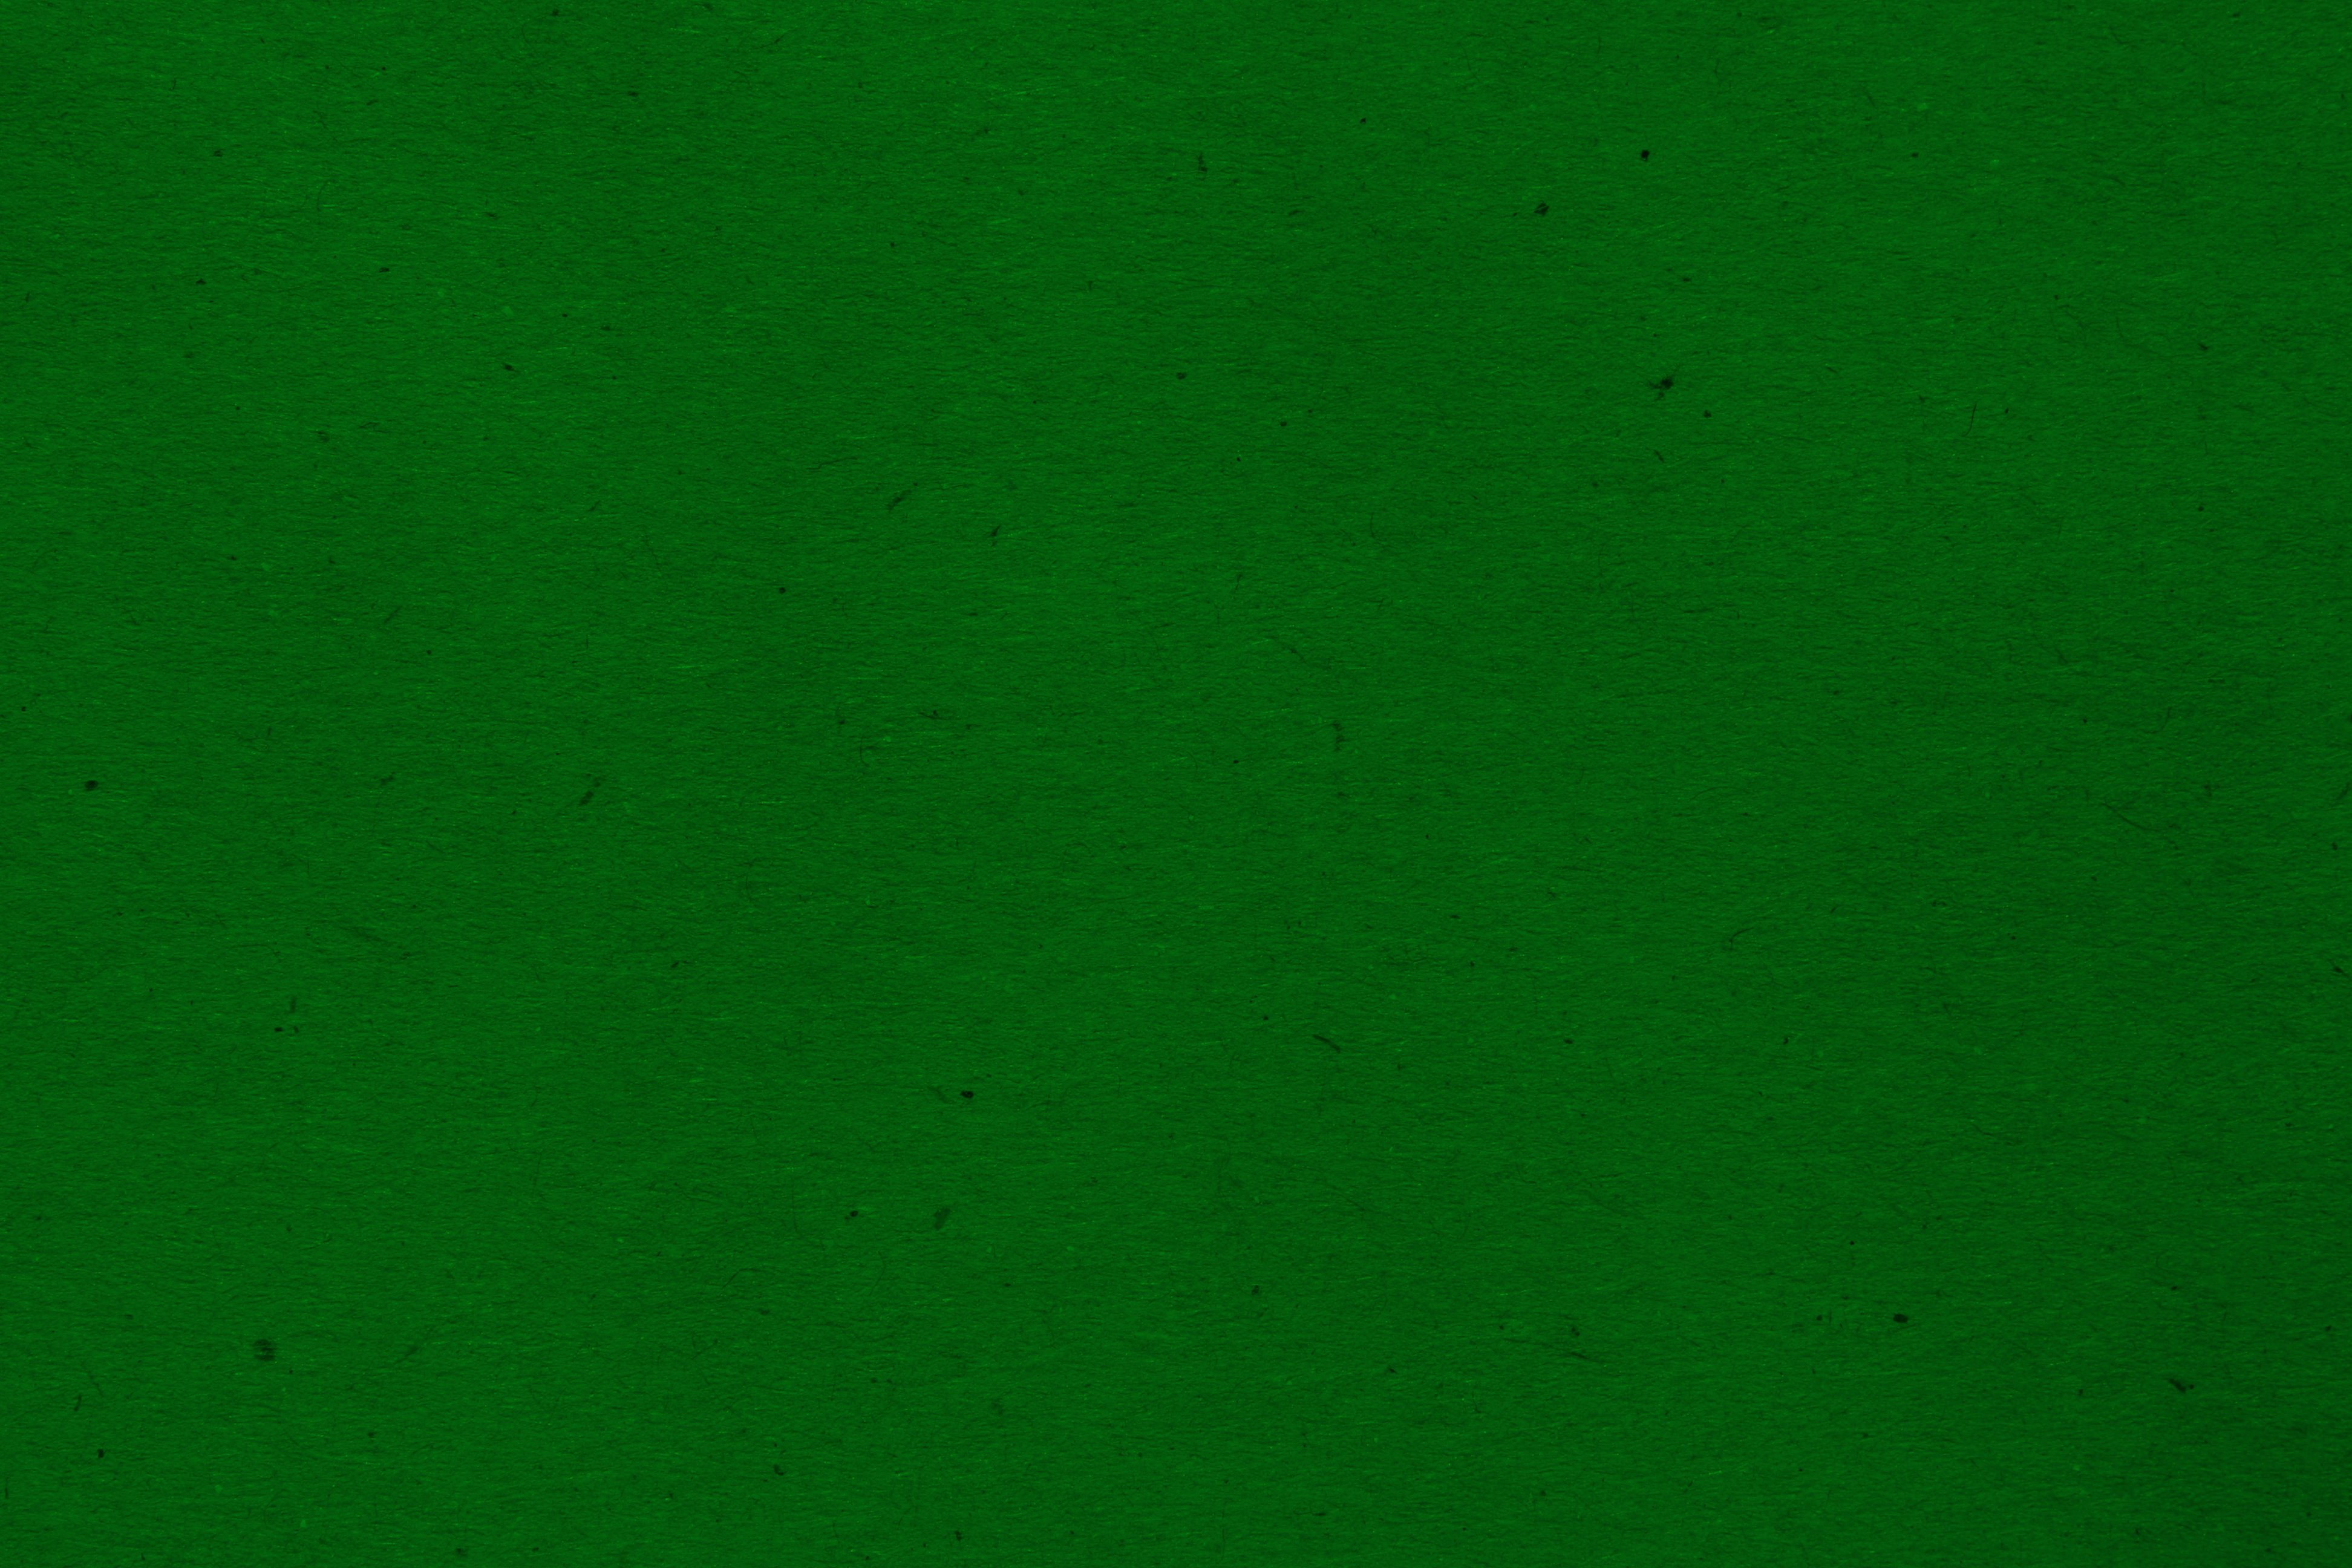 Green Colour Background   BACKGROUND WALLPAPER   BACKGROUND WALLPAPER 3888x2592